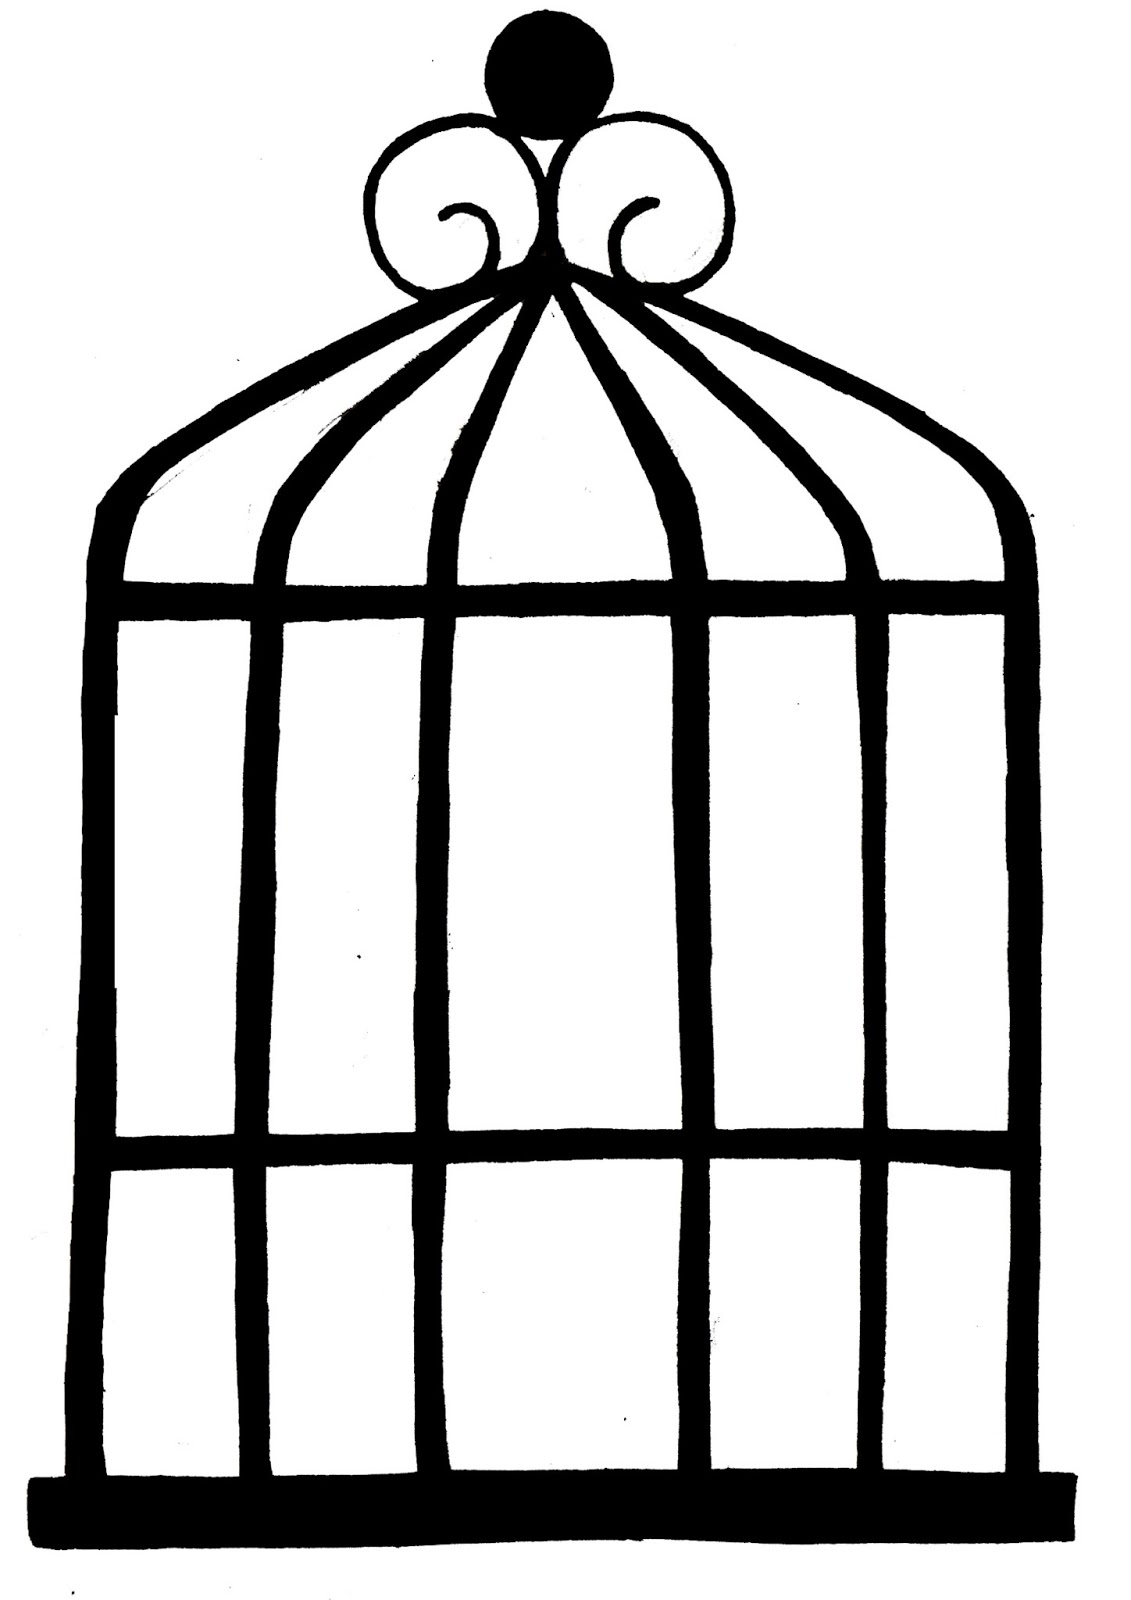 1131x1600 Annabelshungee Birdcage Drawings Birthday Party Ideas